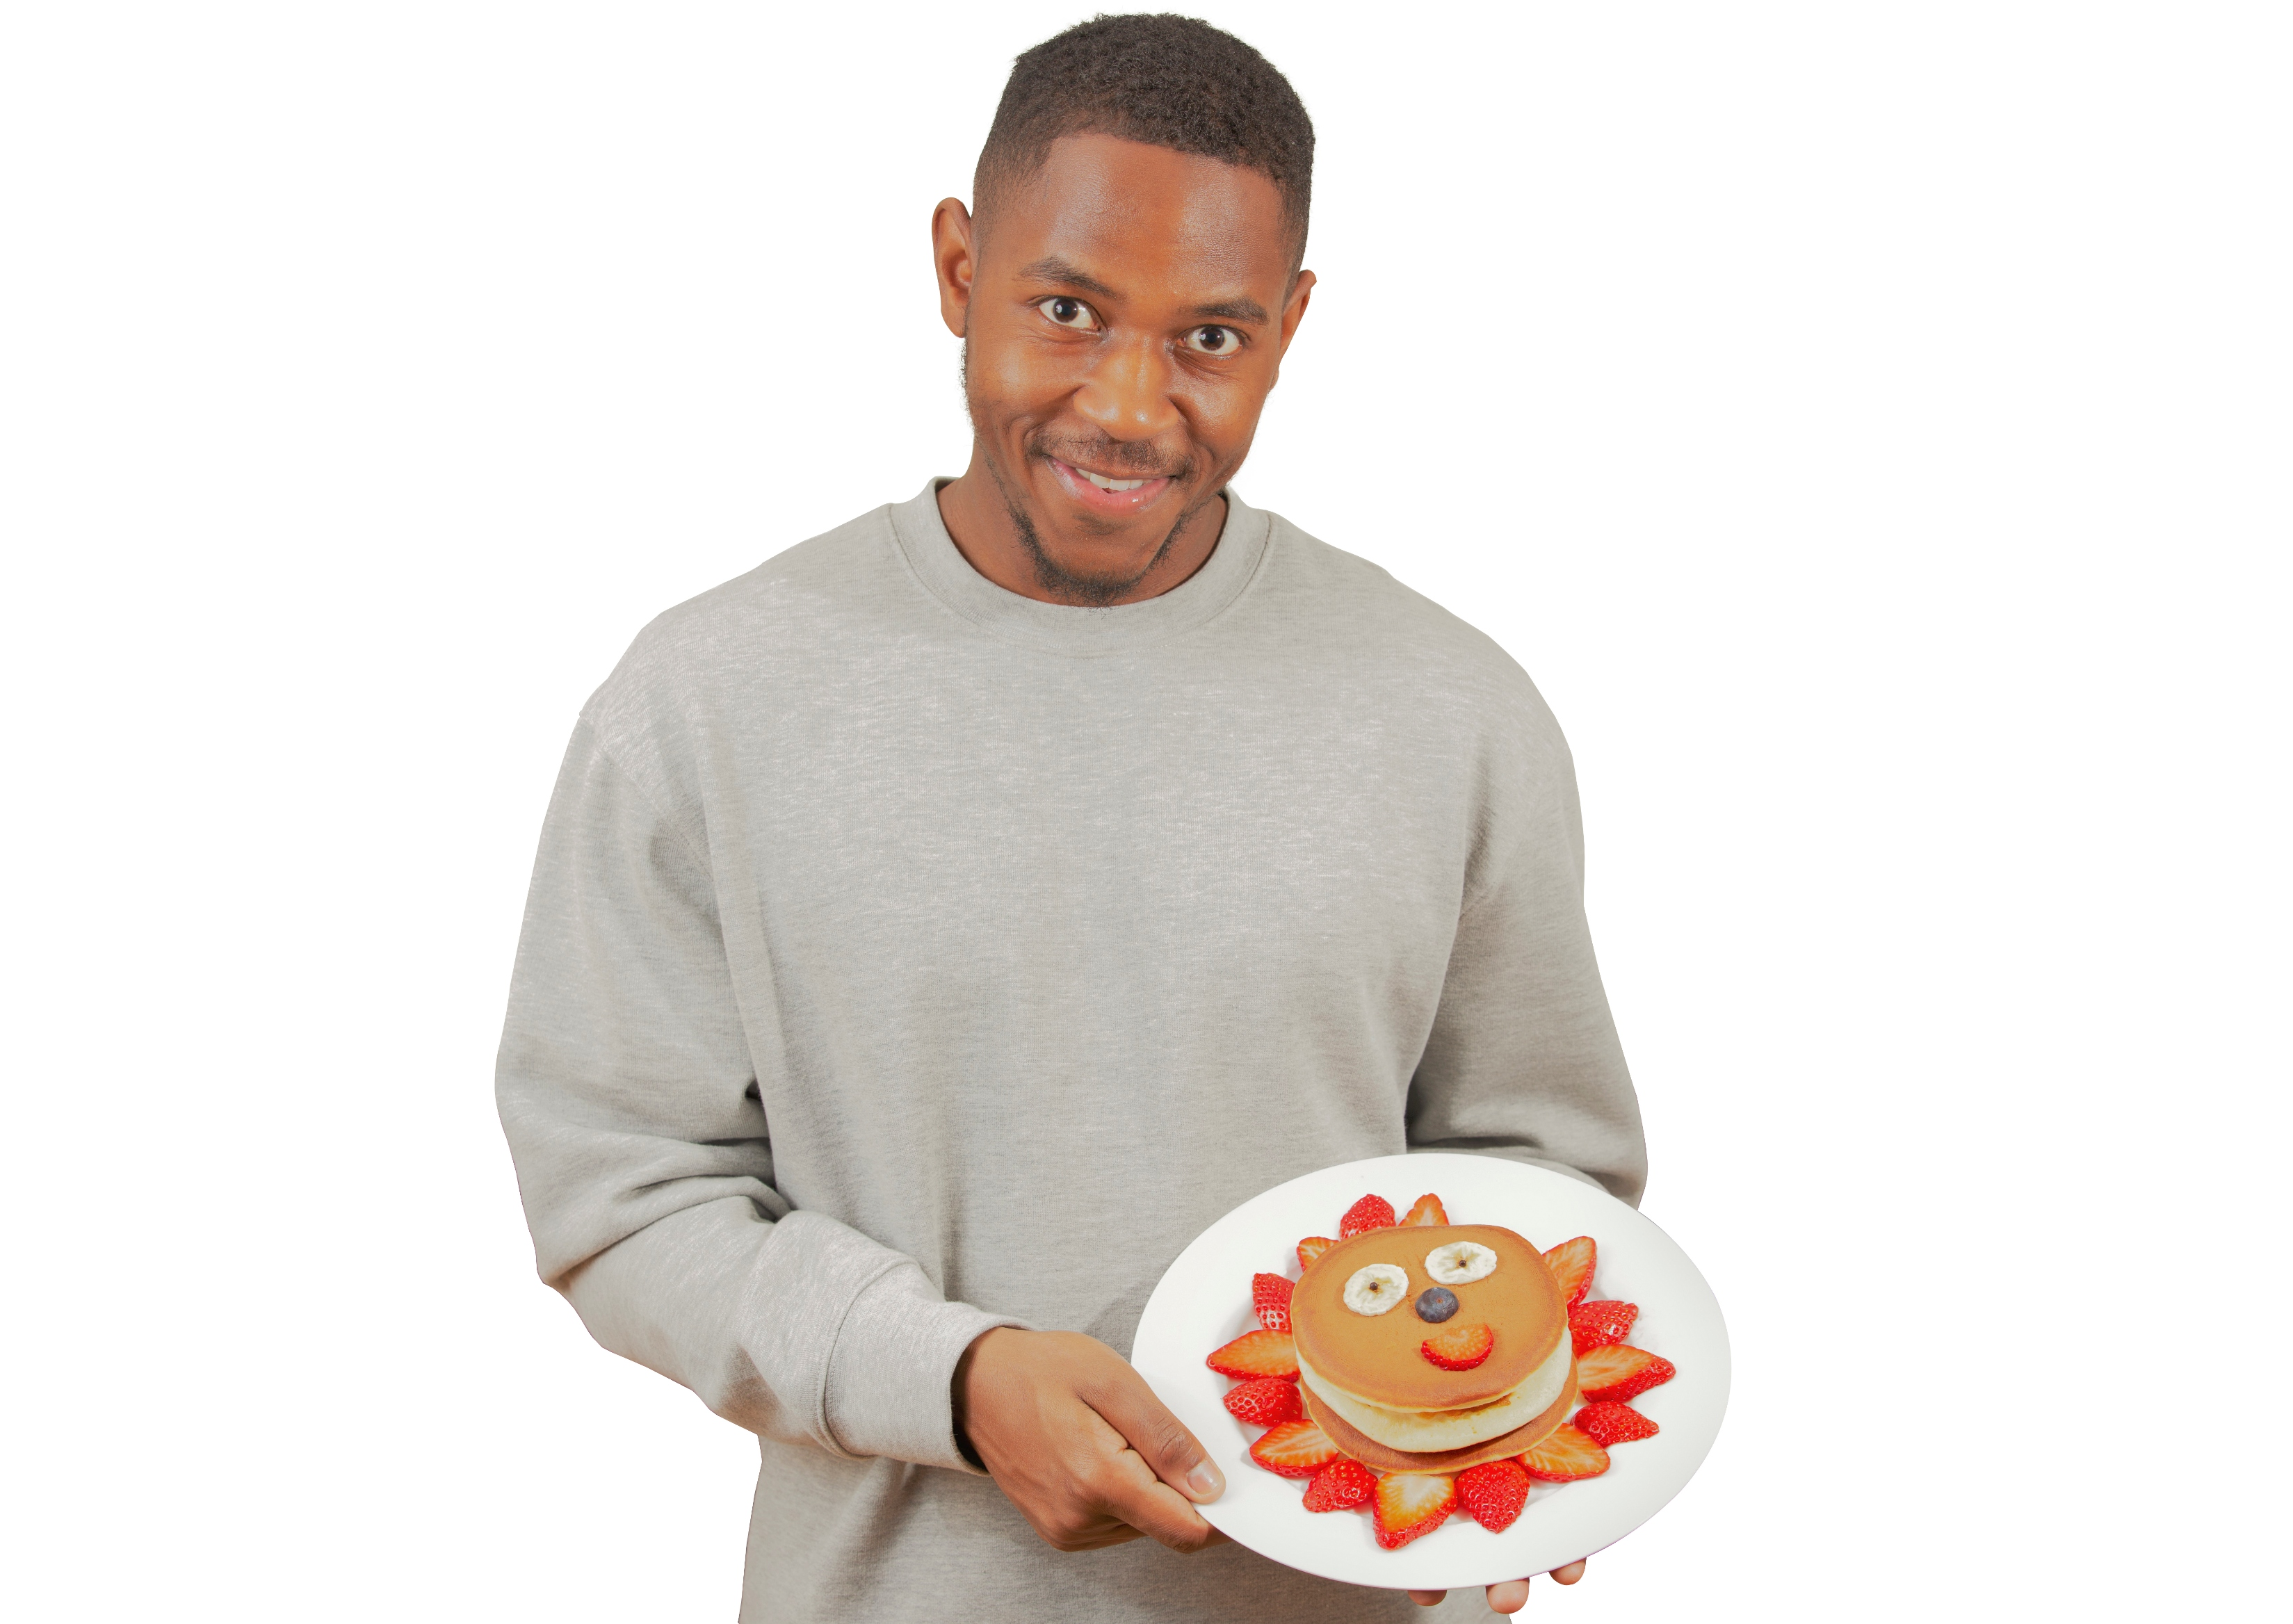 Man holding Crepes and Pancakes